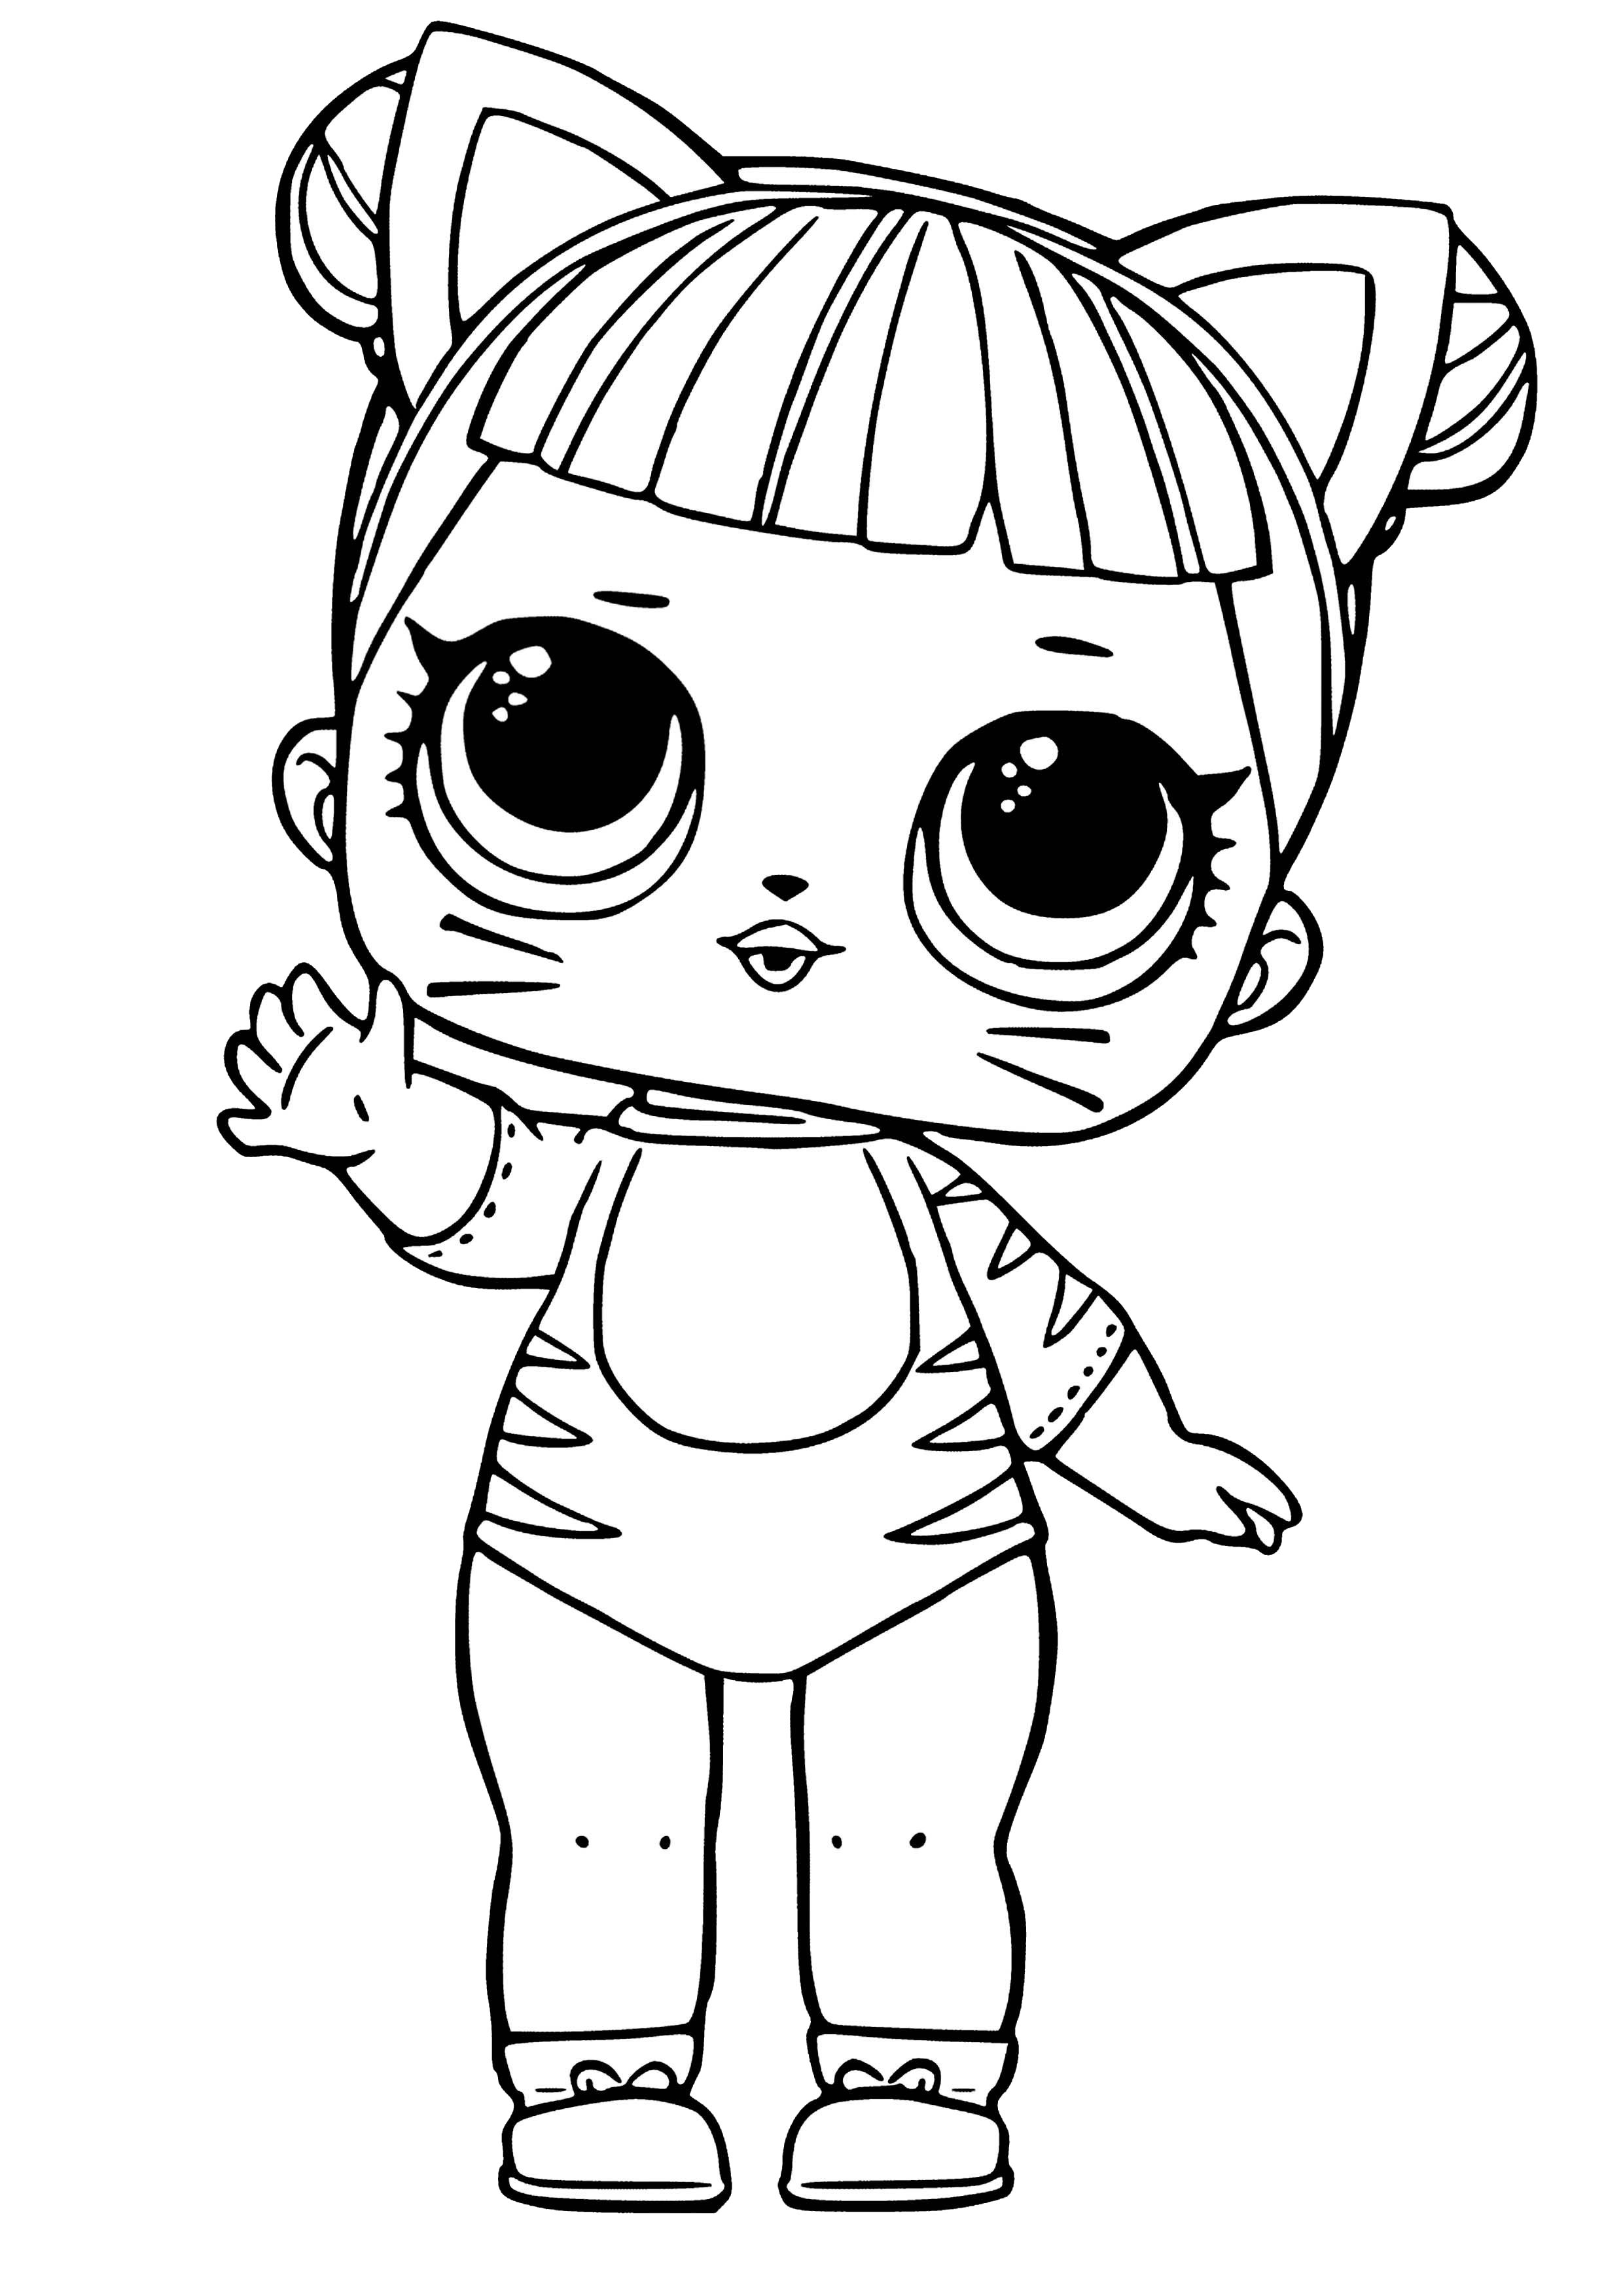 Lol Coloring Page Lol Surprise Cute Coloring Pages Cat